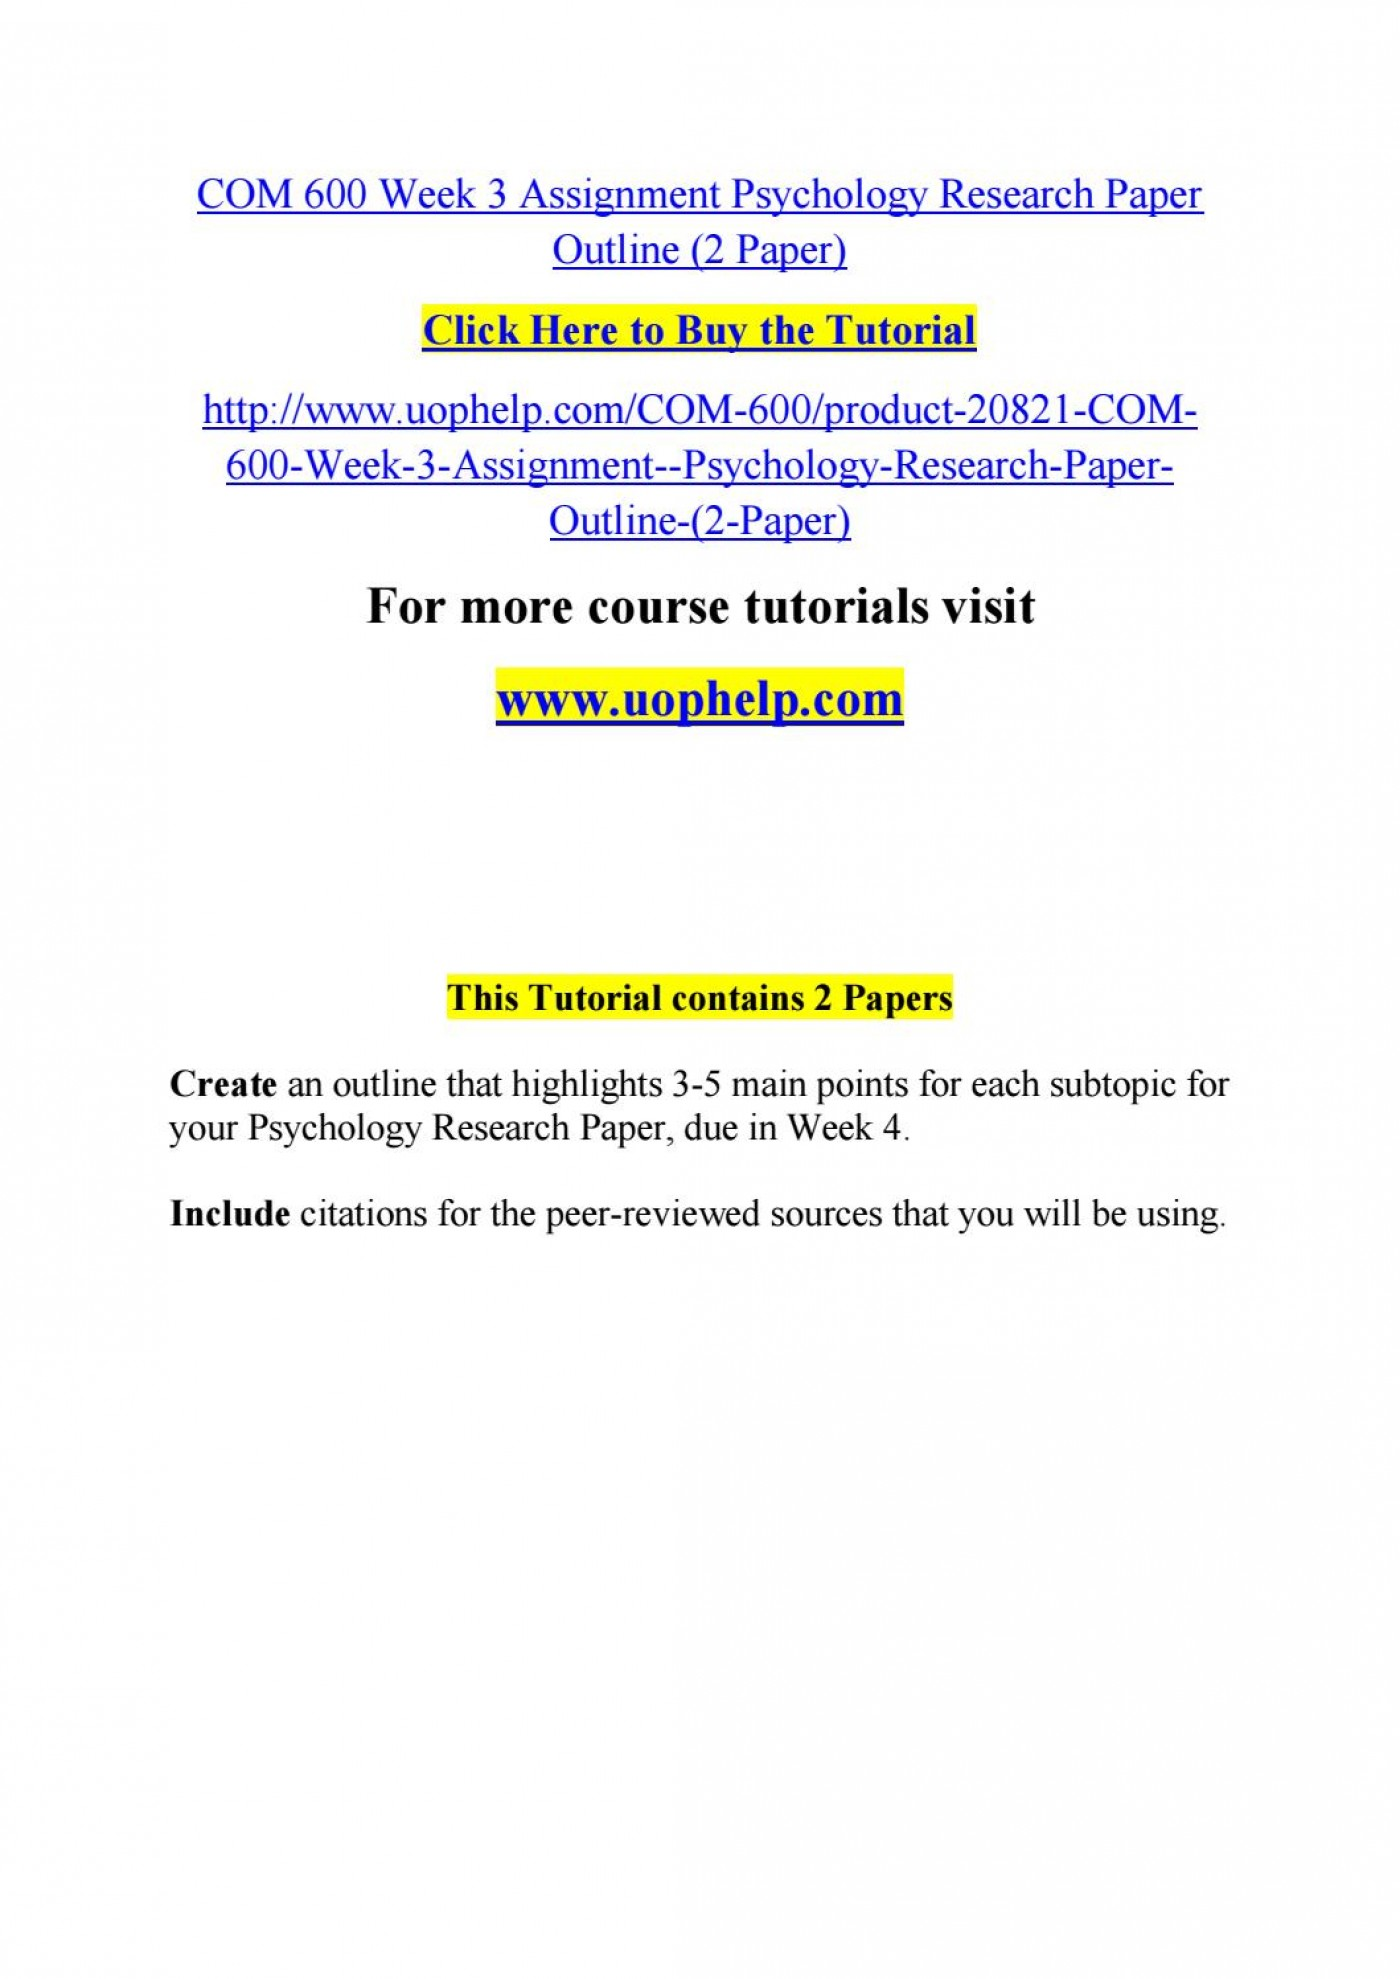 007 Psychology Research Paper Outline Com Page 1 Striking 600 Com/600 1400